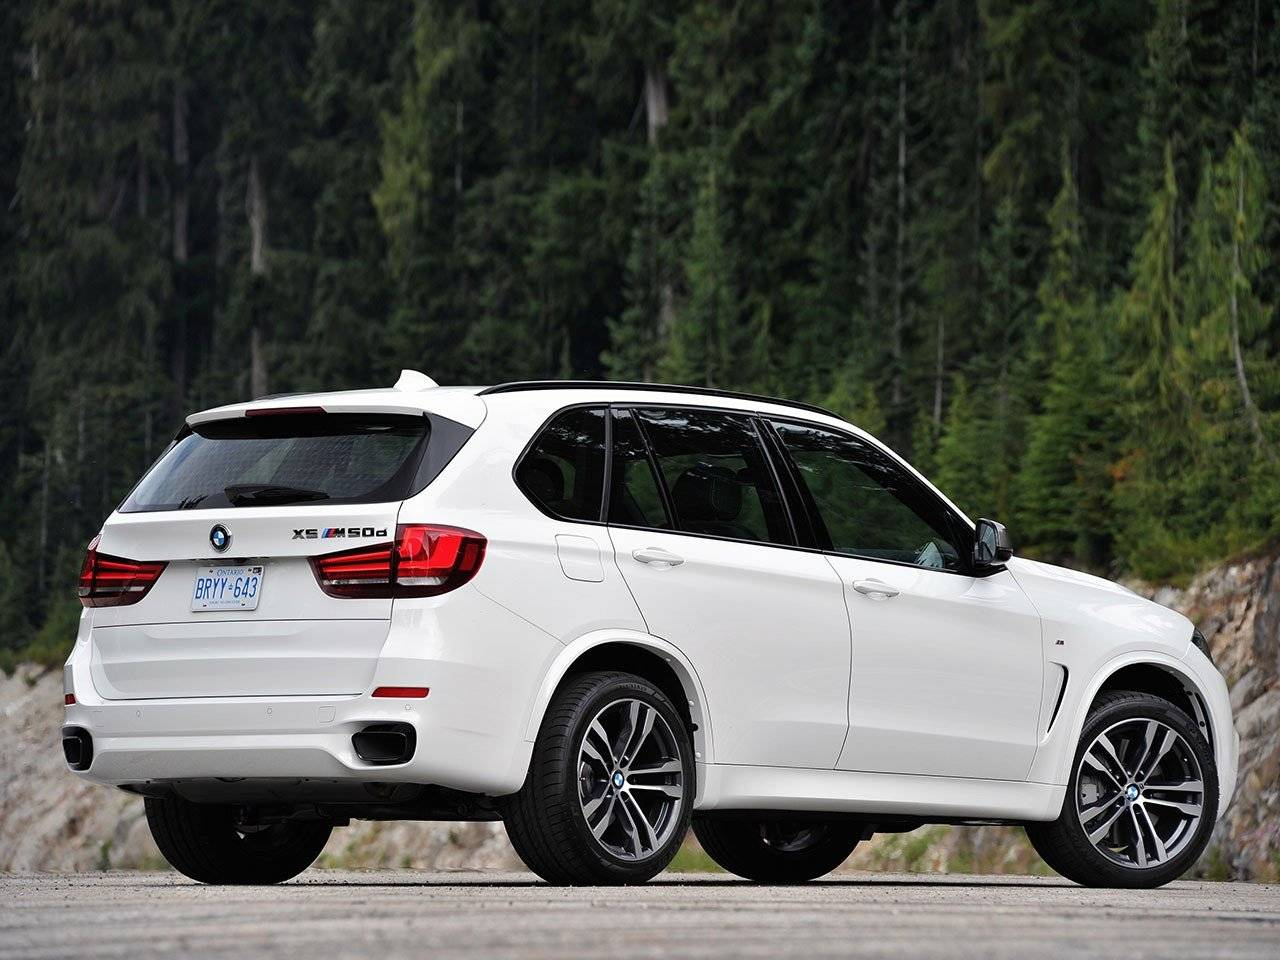 prijs en meer foto s van bmw x5 m50d autonieuws. Black Bedroom Furniture Sets. Home Design Ideas